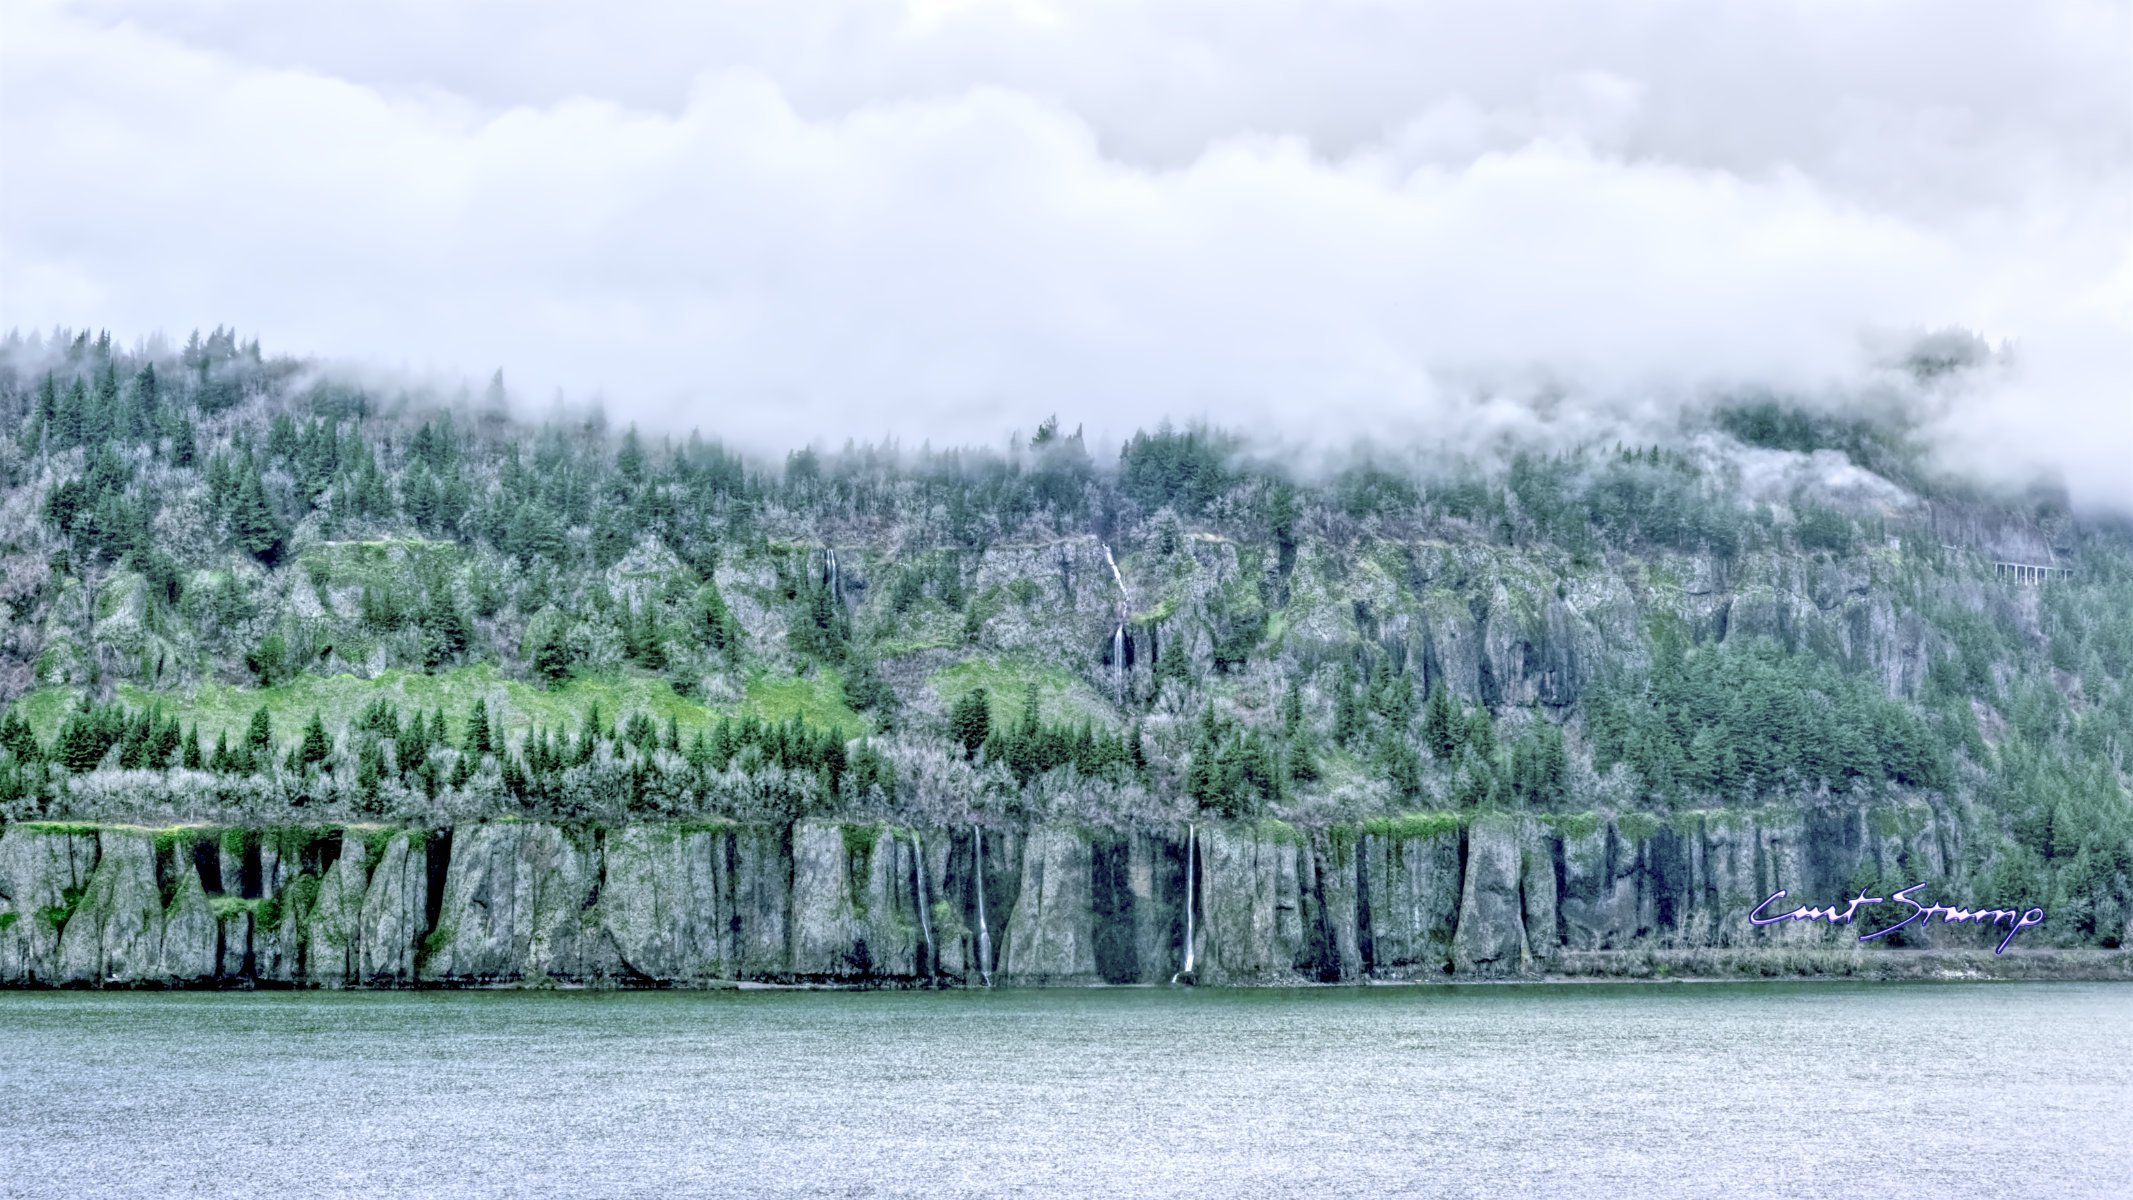 Photo of the Columbia River Gorge taken from the Oregon side, looking to the Washington side. Picture of river, rock cliffs, waterfalls, road bridge, evergreen trees touching the clouds.